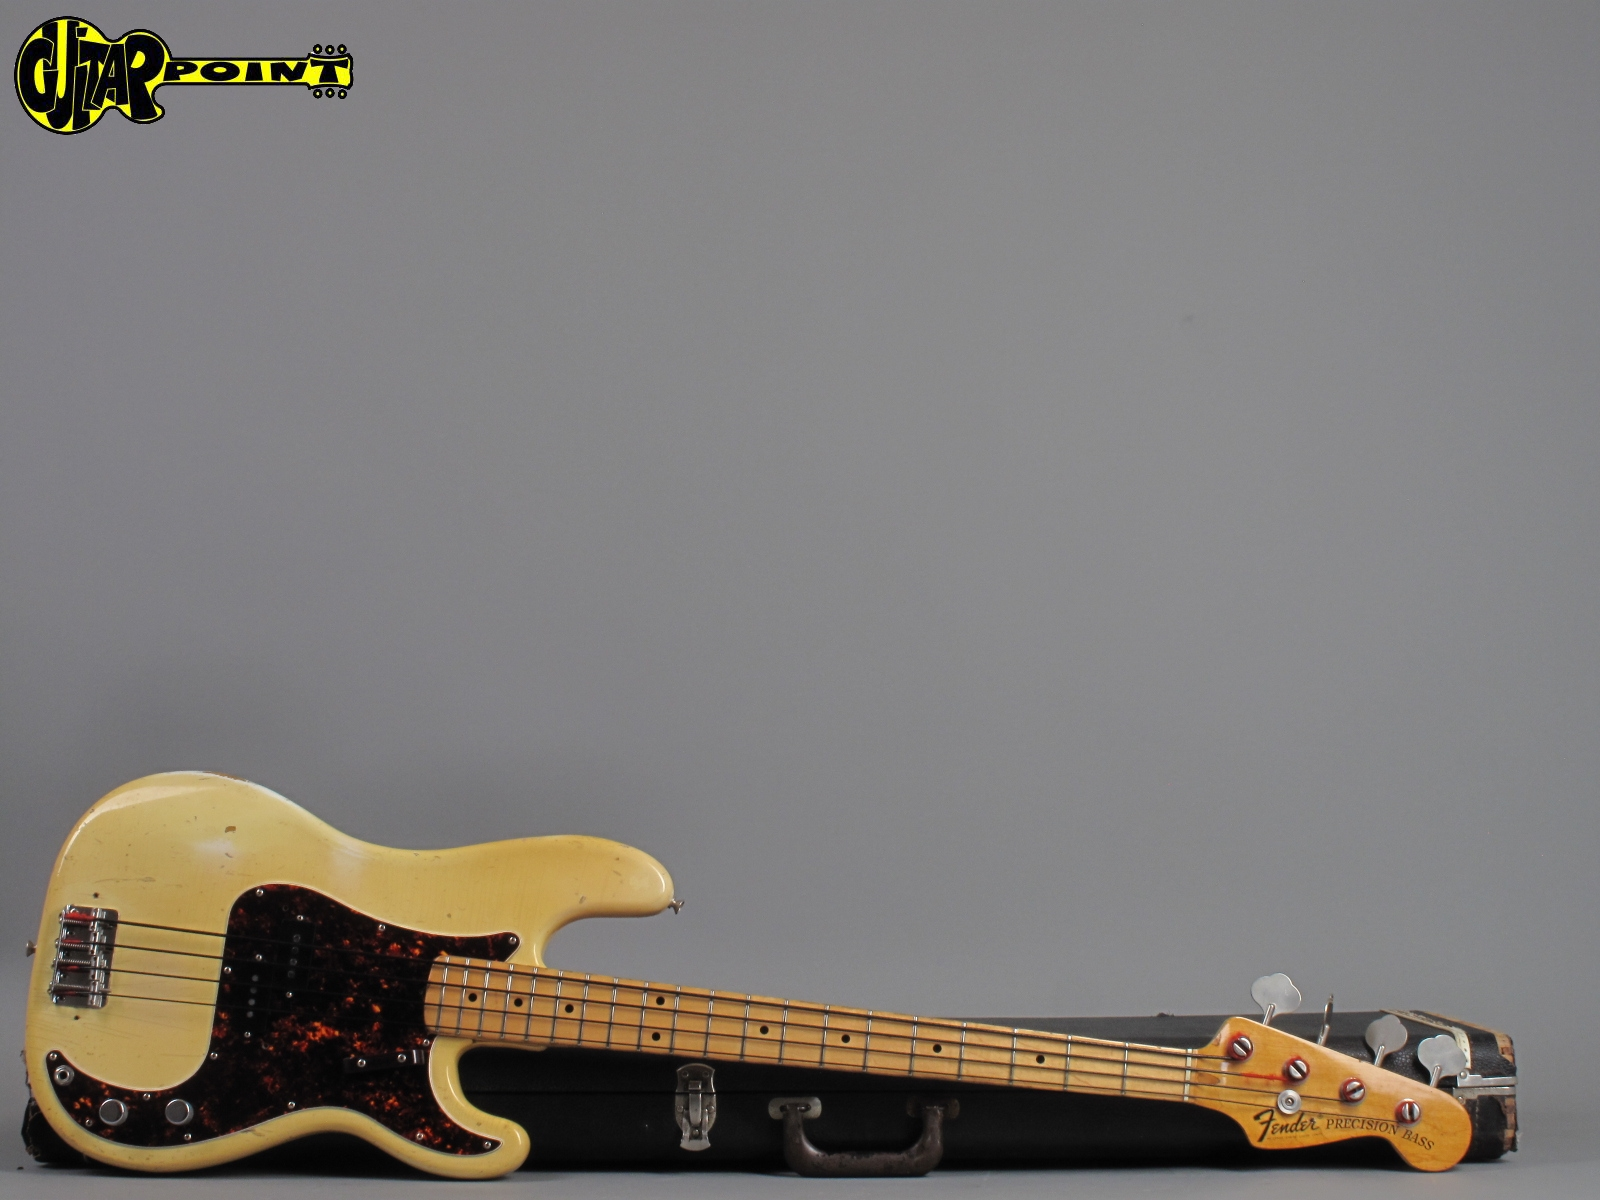 Fender Precision / P Bass 1973 Olympic White Bass For Sale